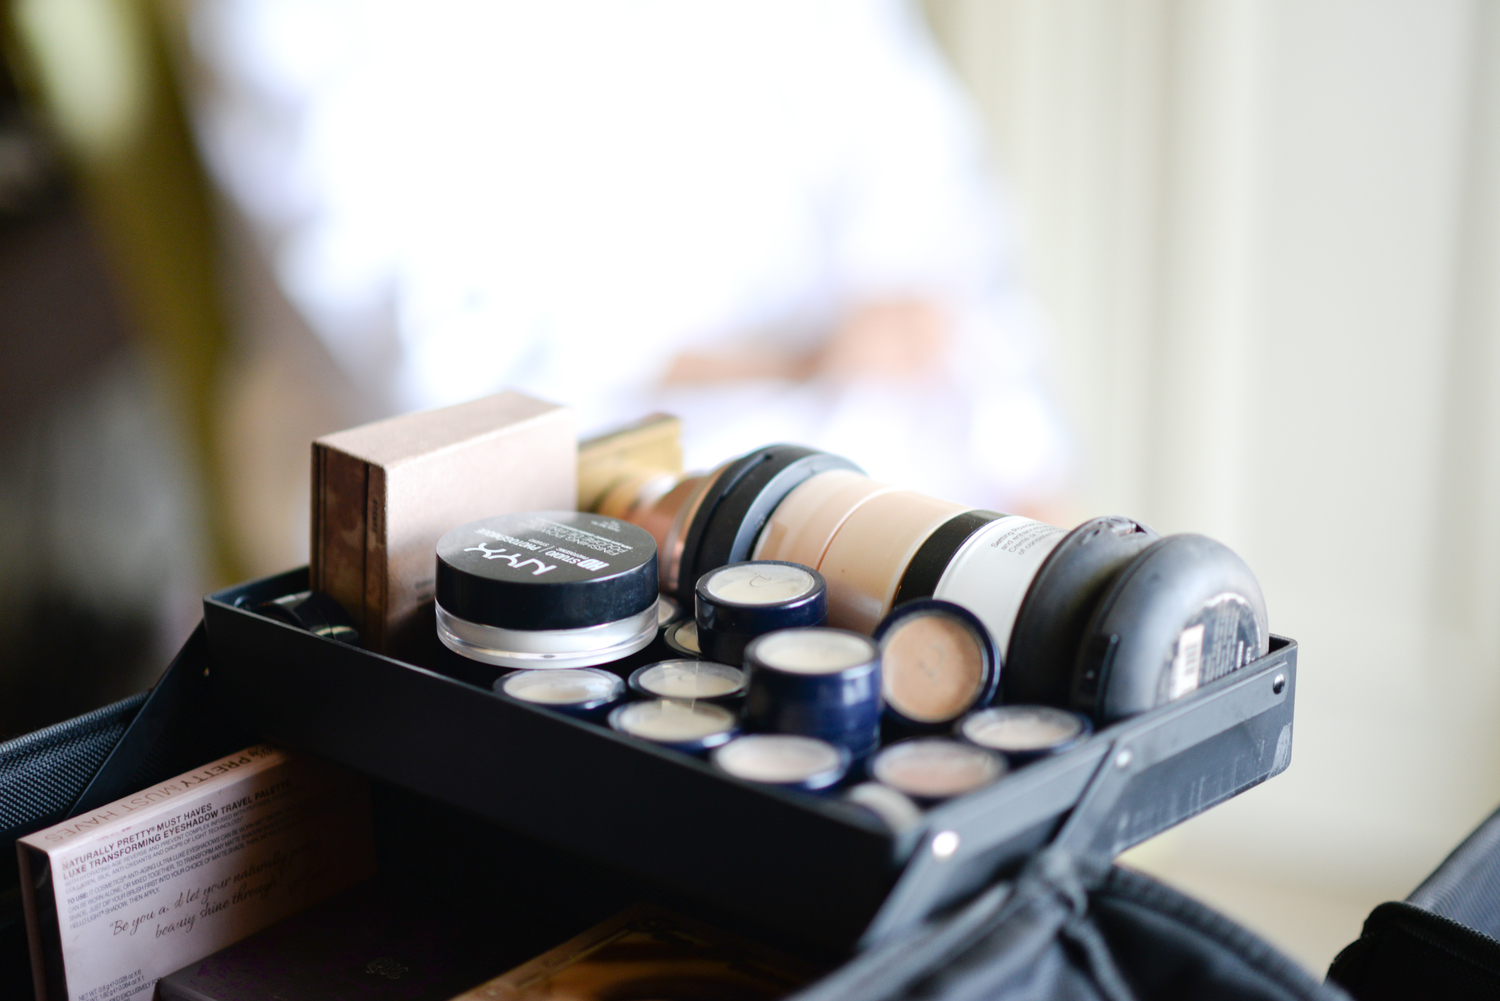 makeup on a counter